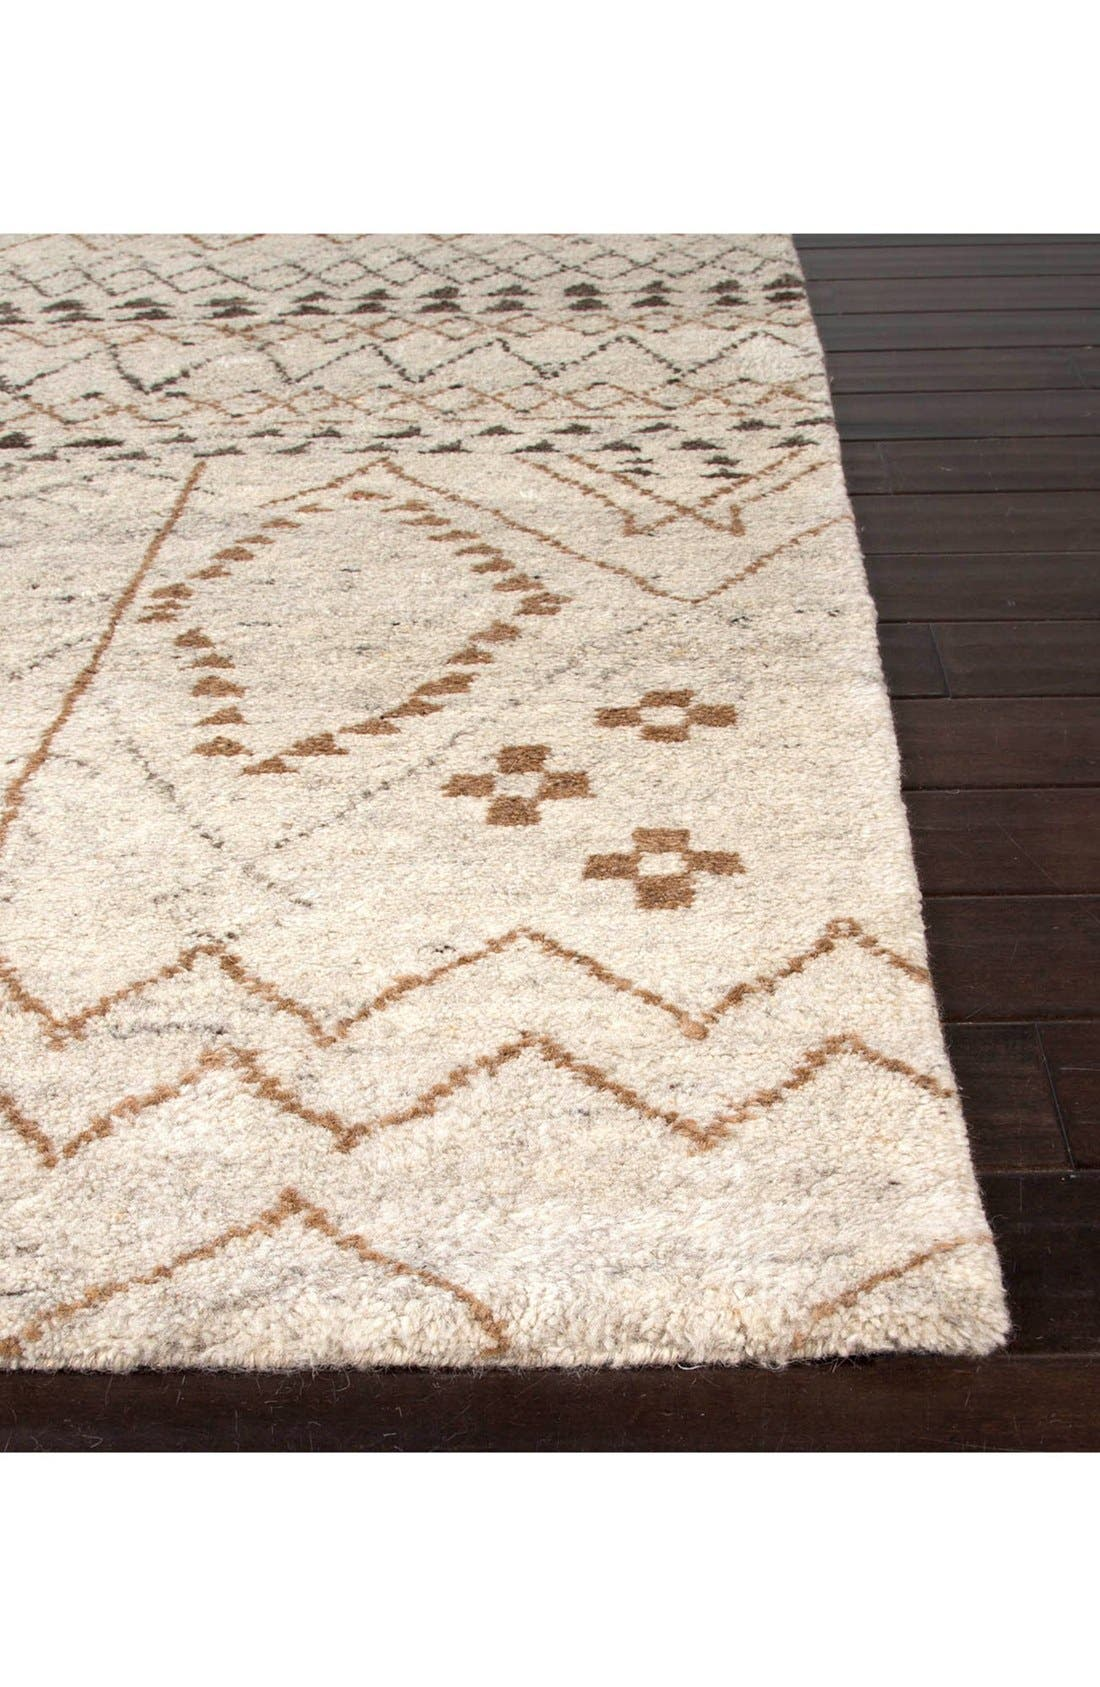 'Zola Zag' Wool Area Rug,                             Alternate thumbnail 5, color,                             IVORY/ TAUPE